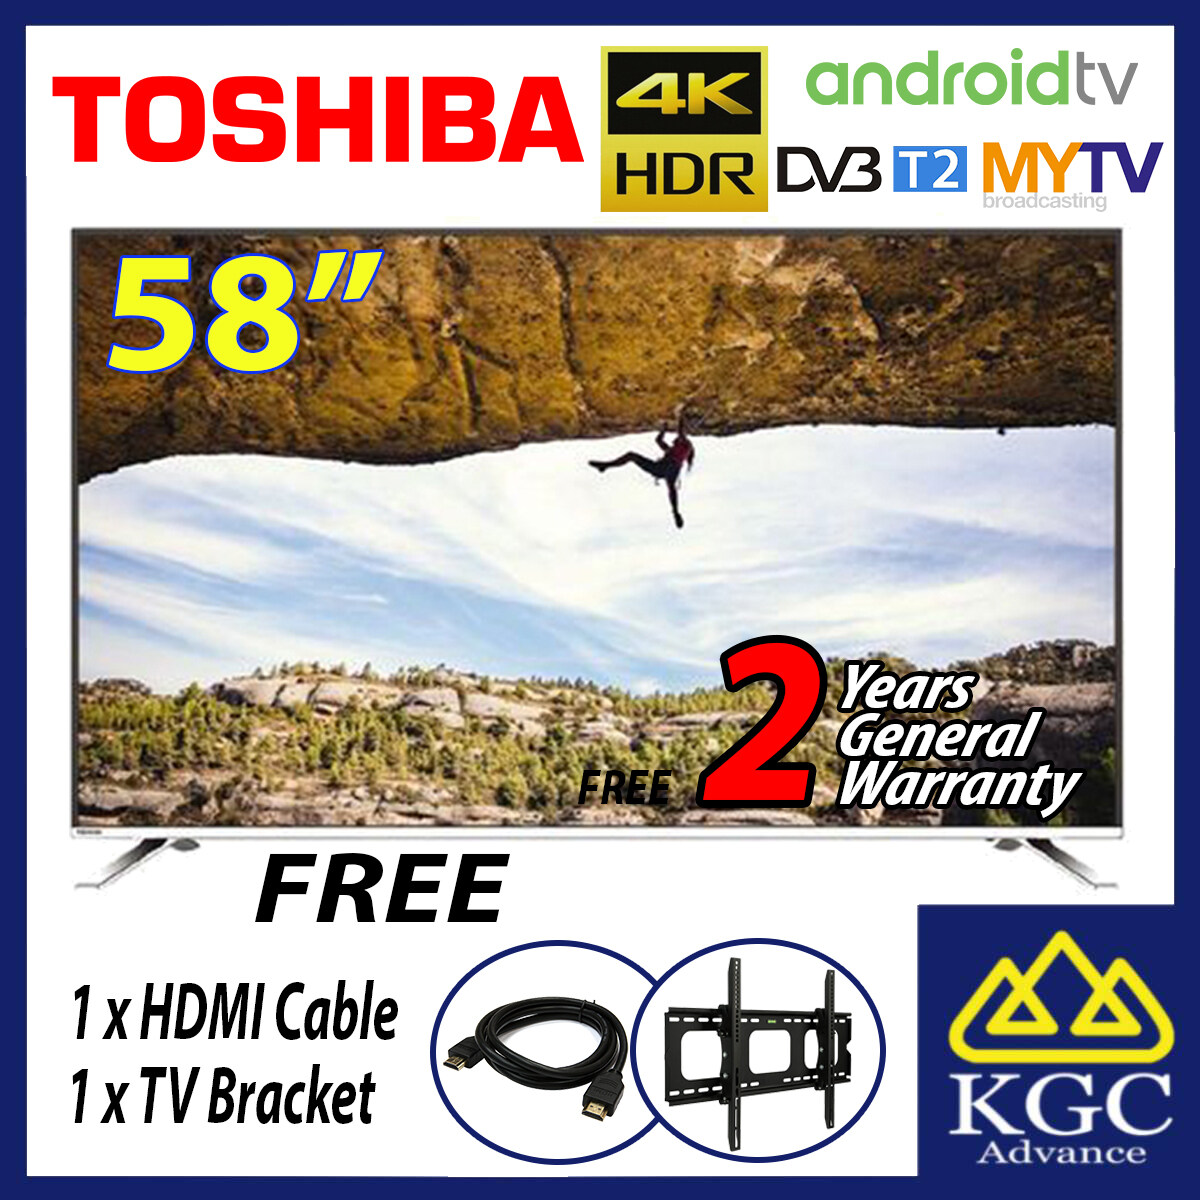 Toshiba 58 inch Android 4K UHD LED TV 58U7880VM (Free Bracket + HDMI Cable)